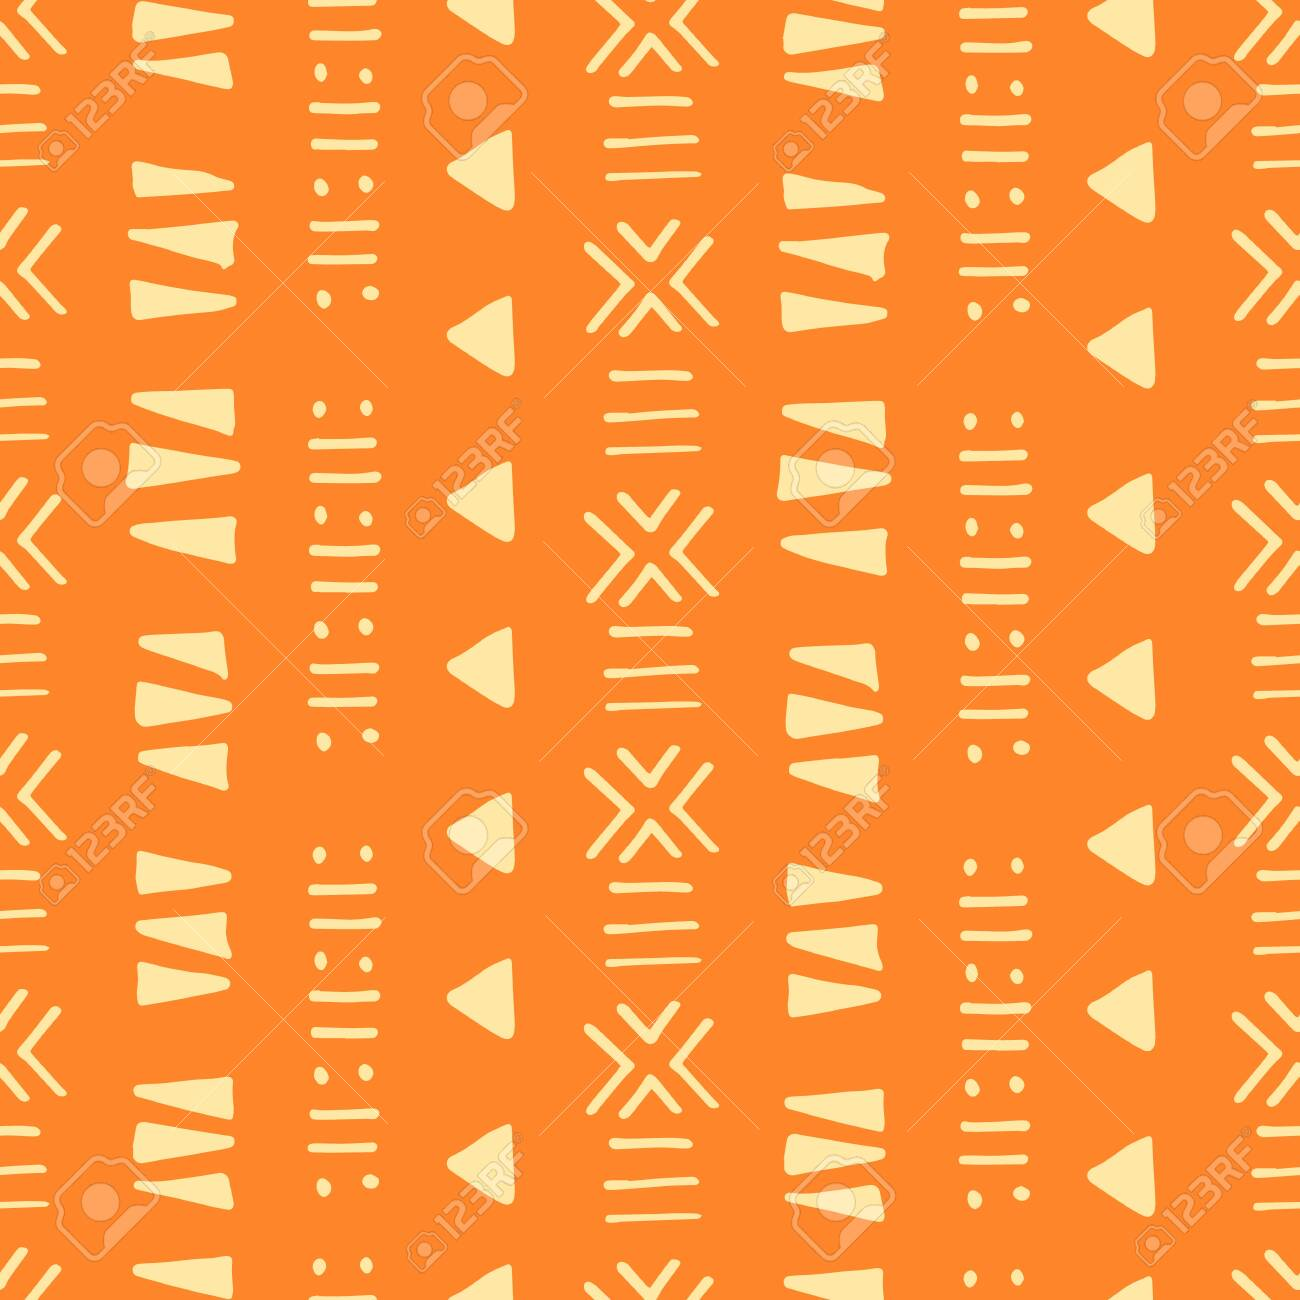 Tribal creative vector seamless pattern. Ethnic abstract geometric handmade african, aztec ornament for textile and surface design, package, wallpaper, web page backdrop, wrapping paper, - 127458386